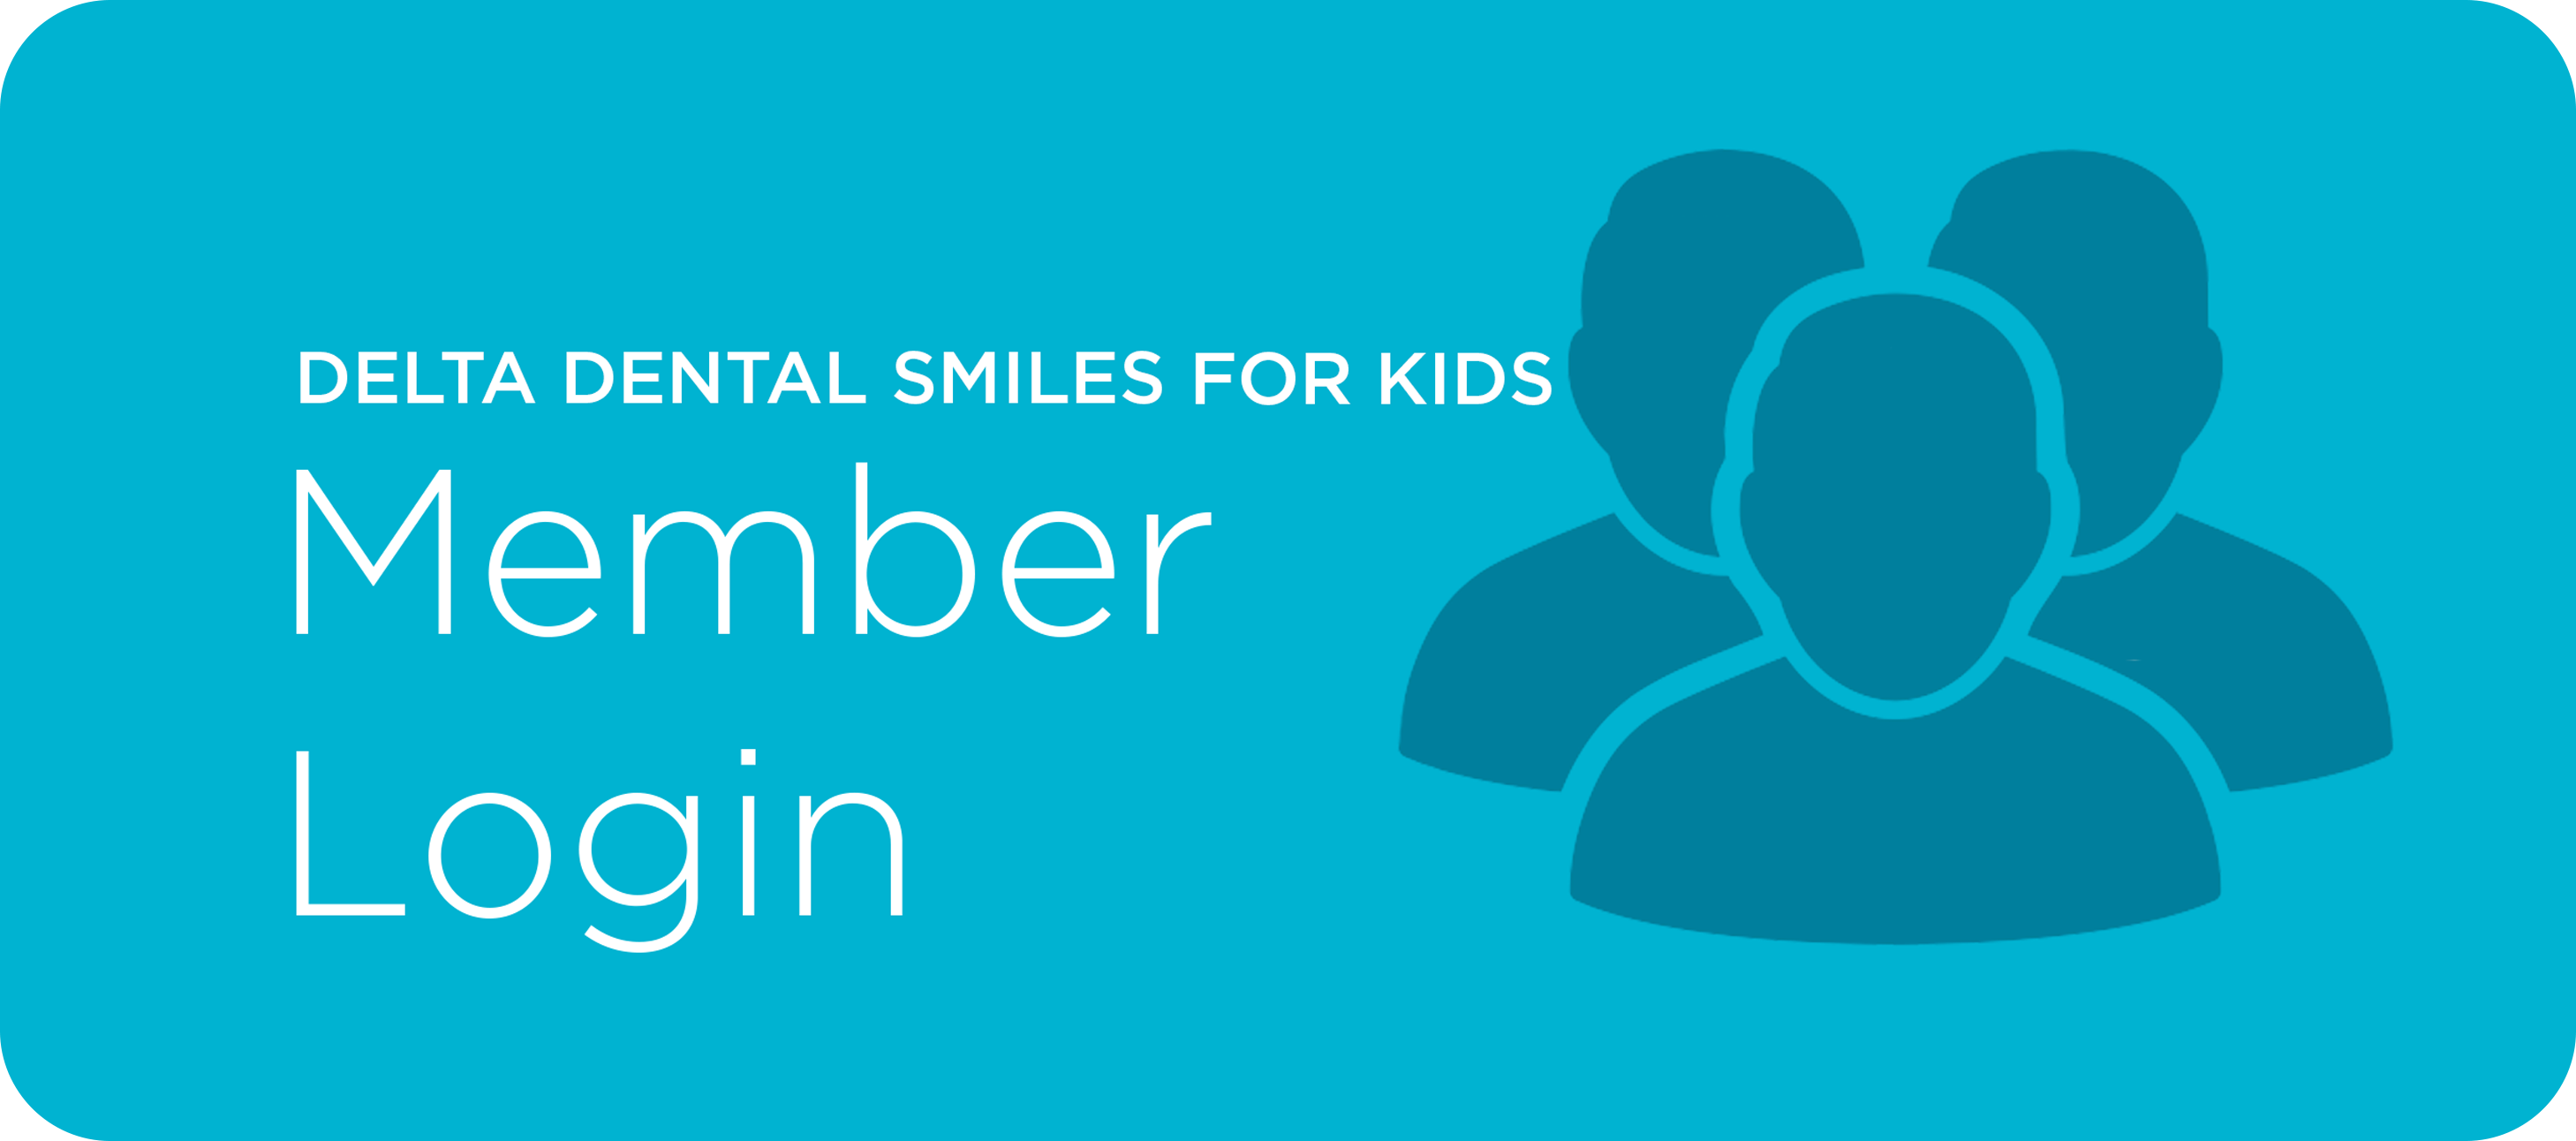 Delta Dental Smiles for Kids Member Login